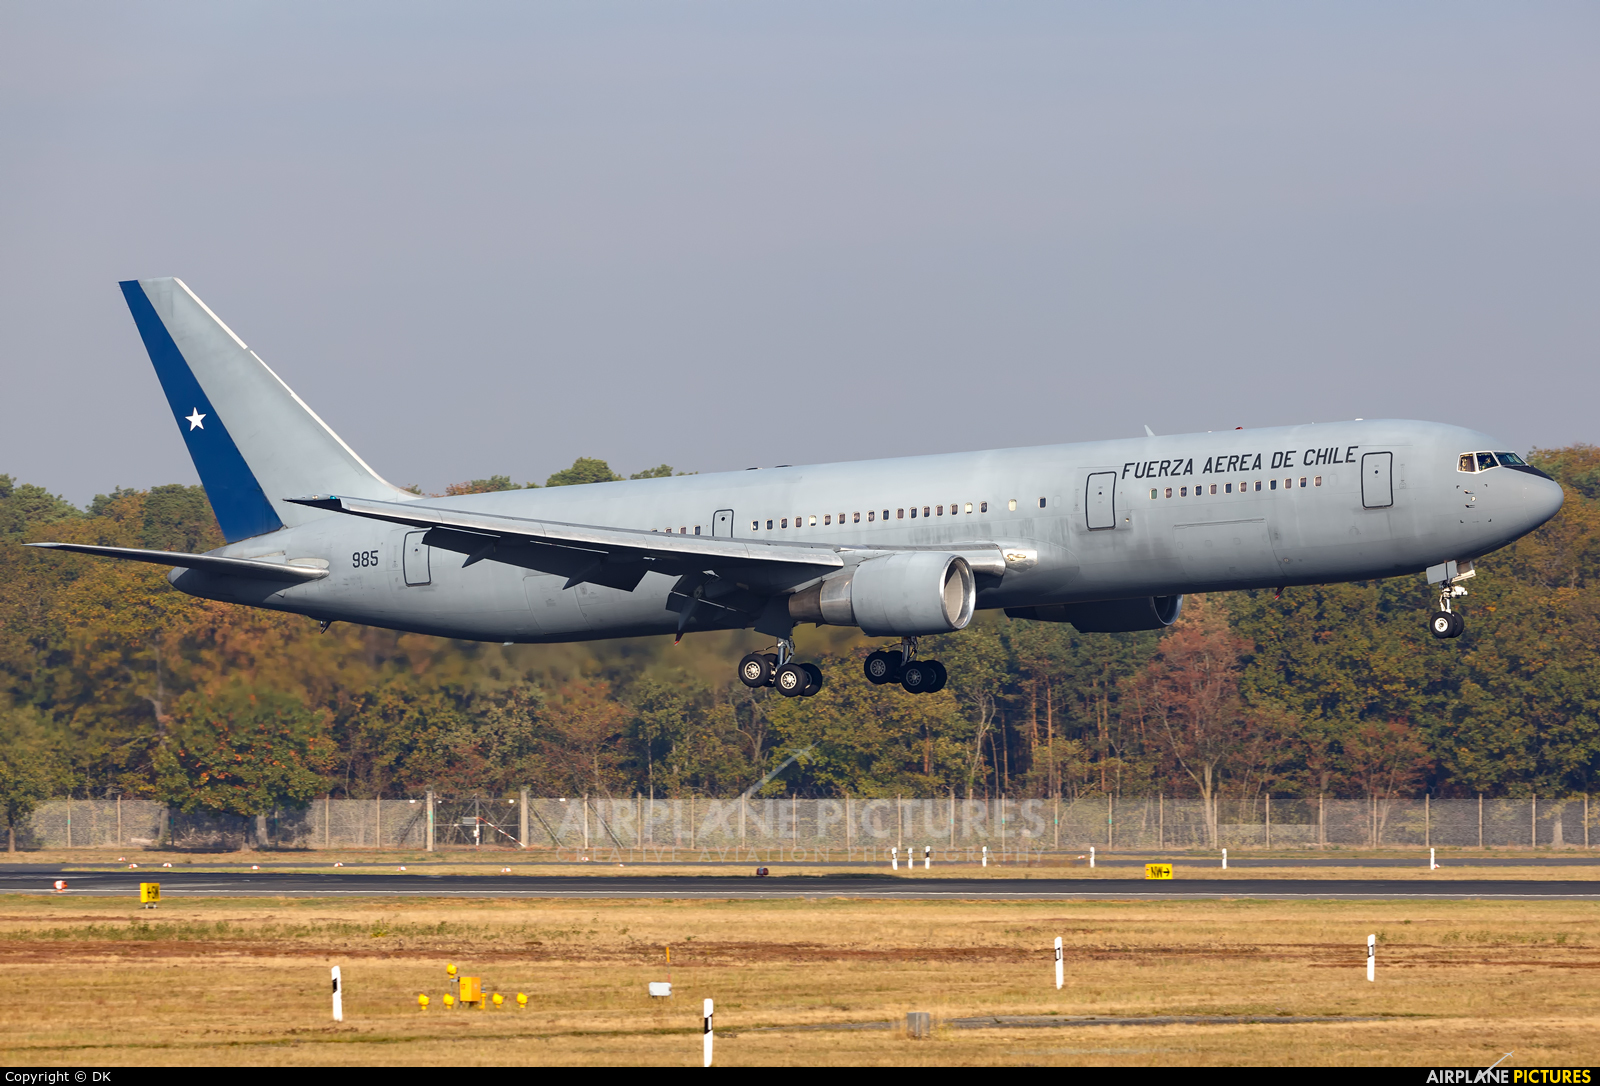 Chile - Air Force 985 aircraft at Berlin - Tegel